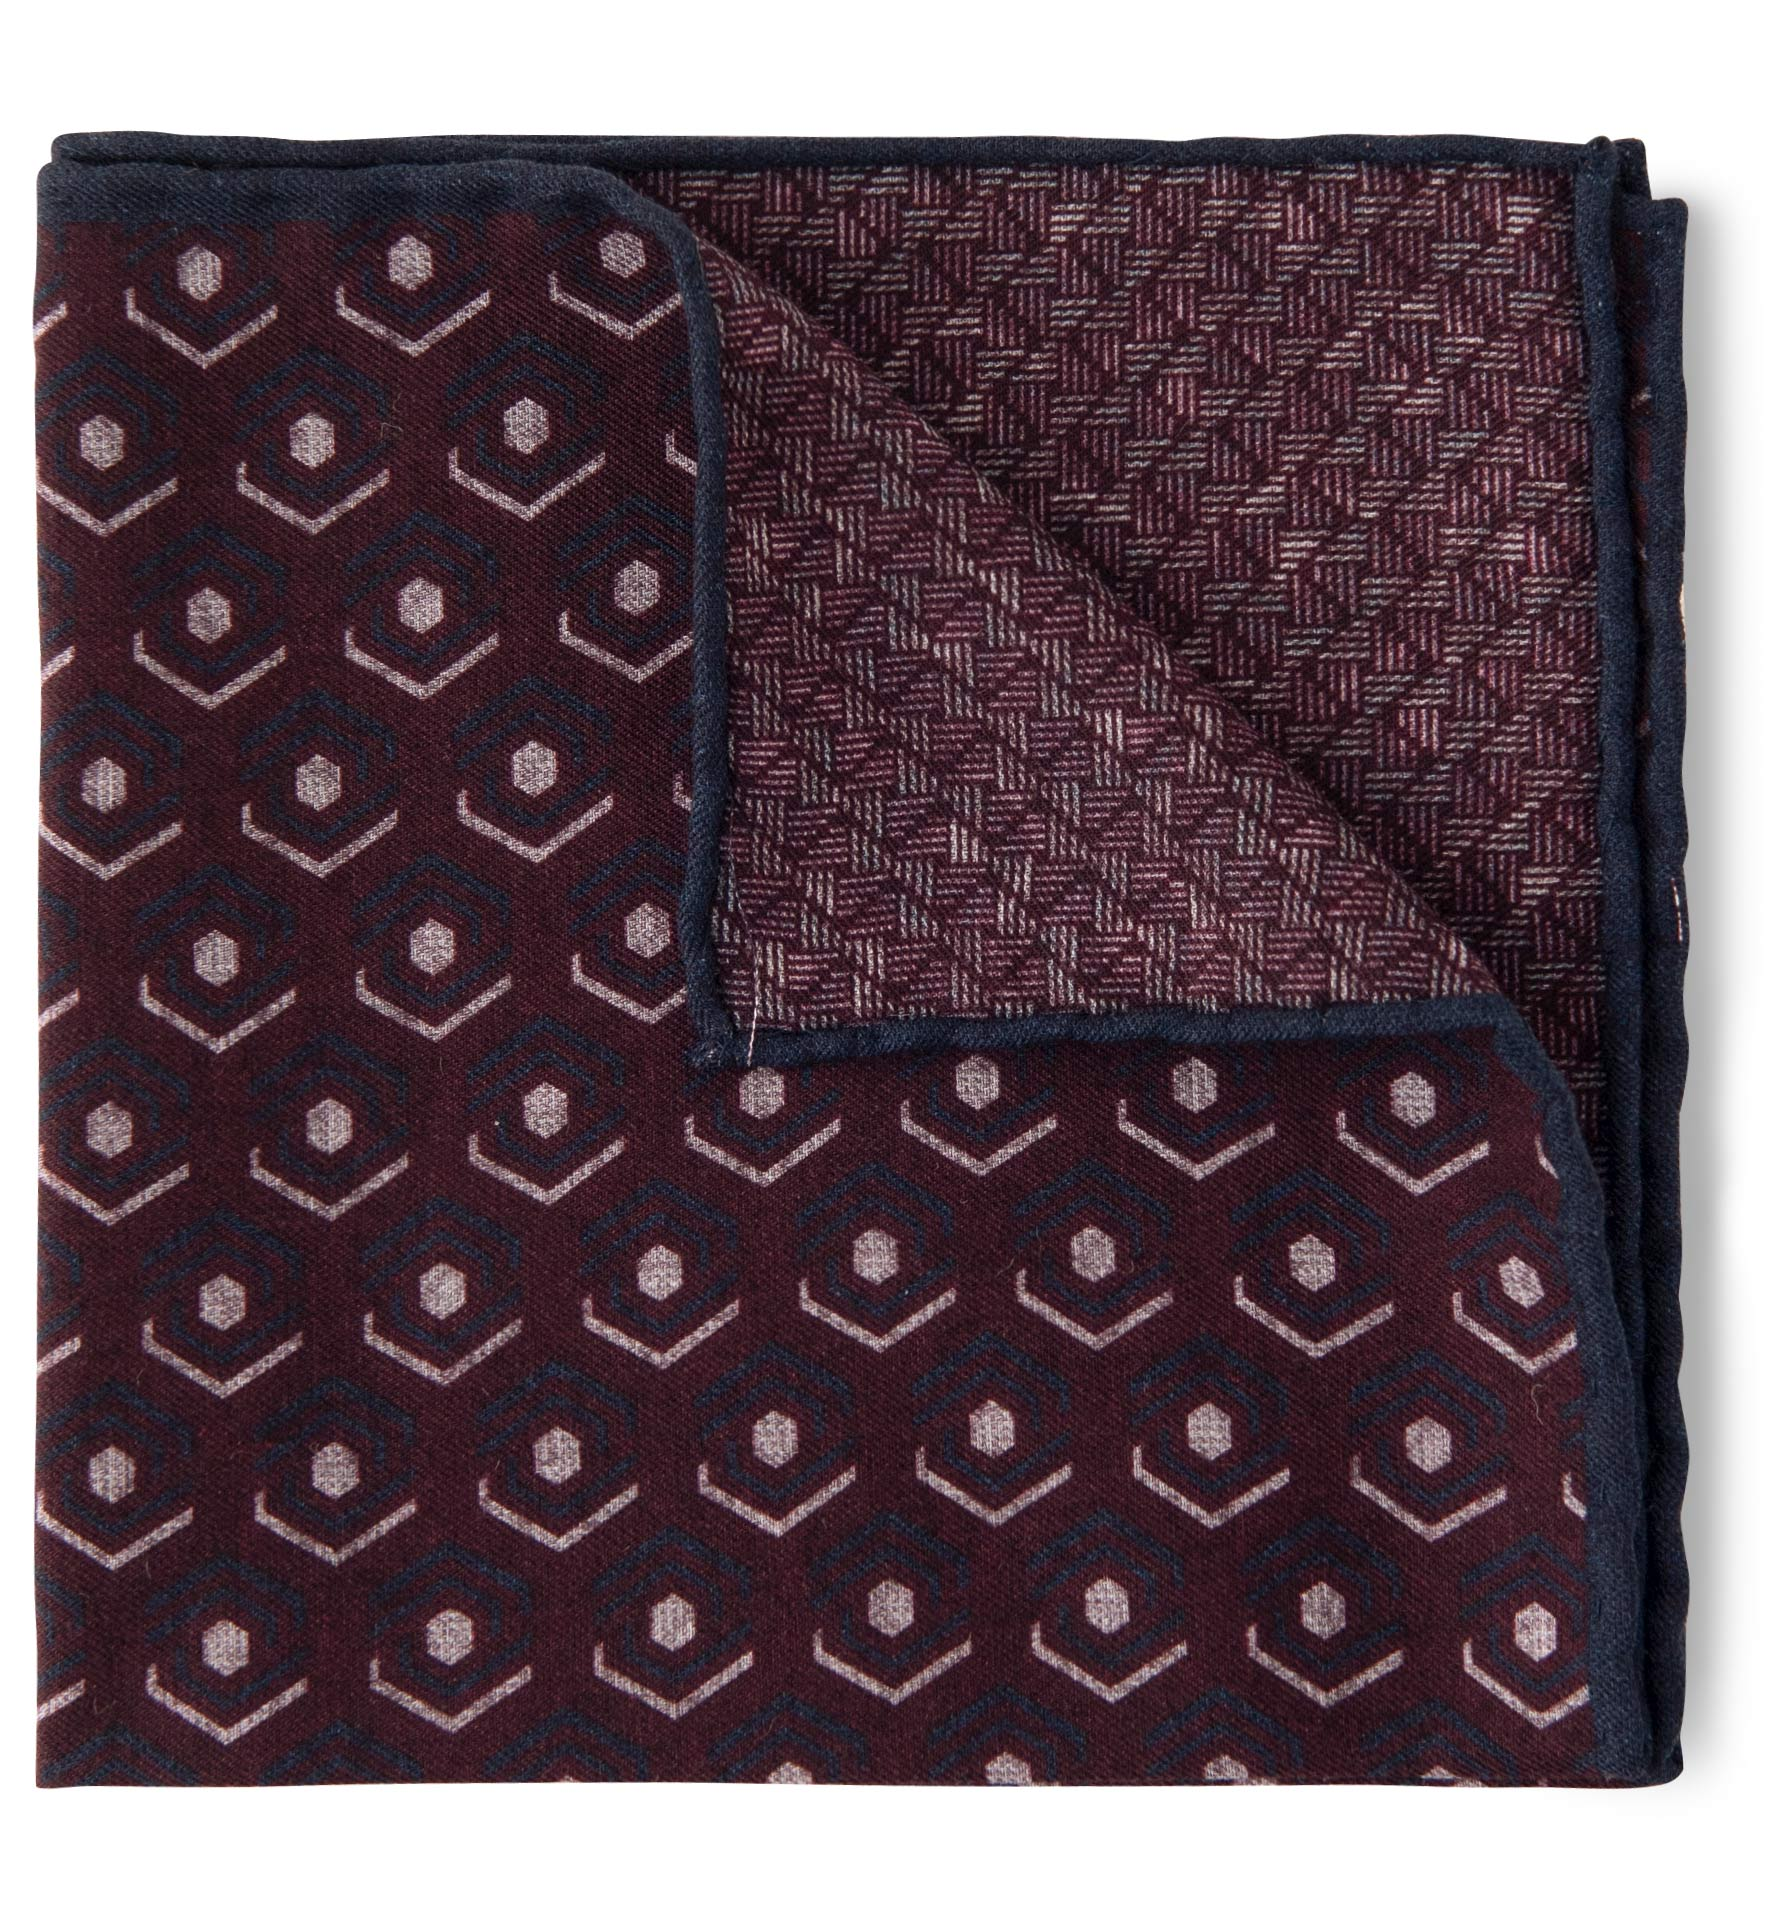 Zoom Image of Burgundy and Navy Retro Print Pocket Square